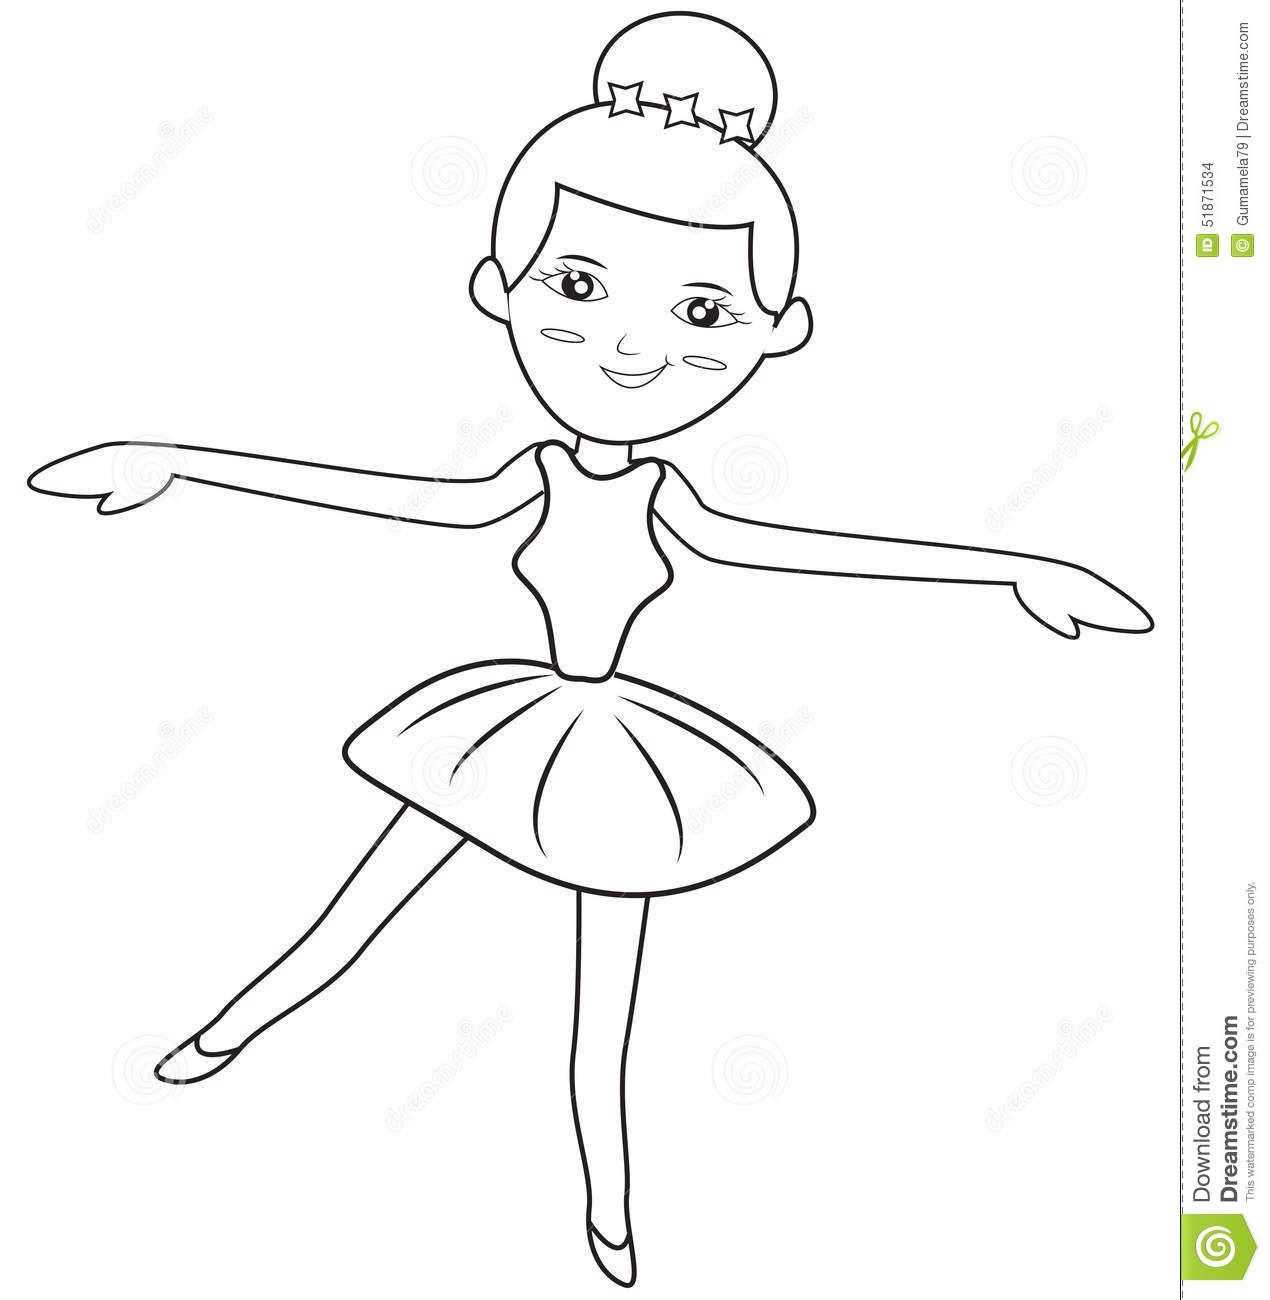 Ballerina Coloring Page Stock Illustration